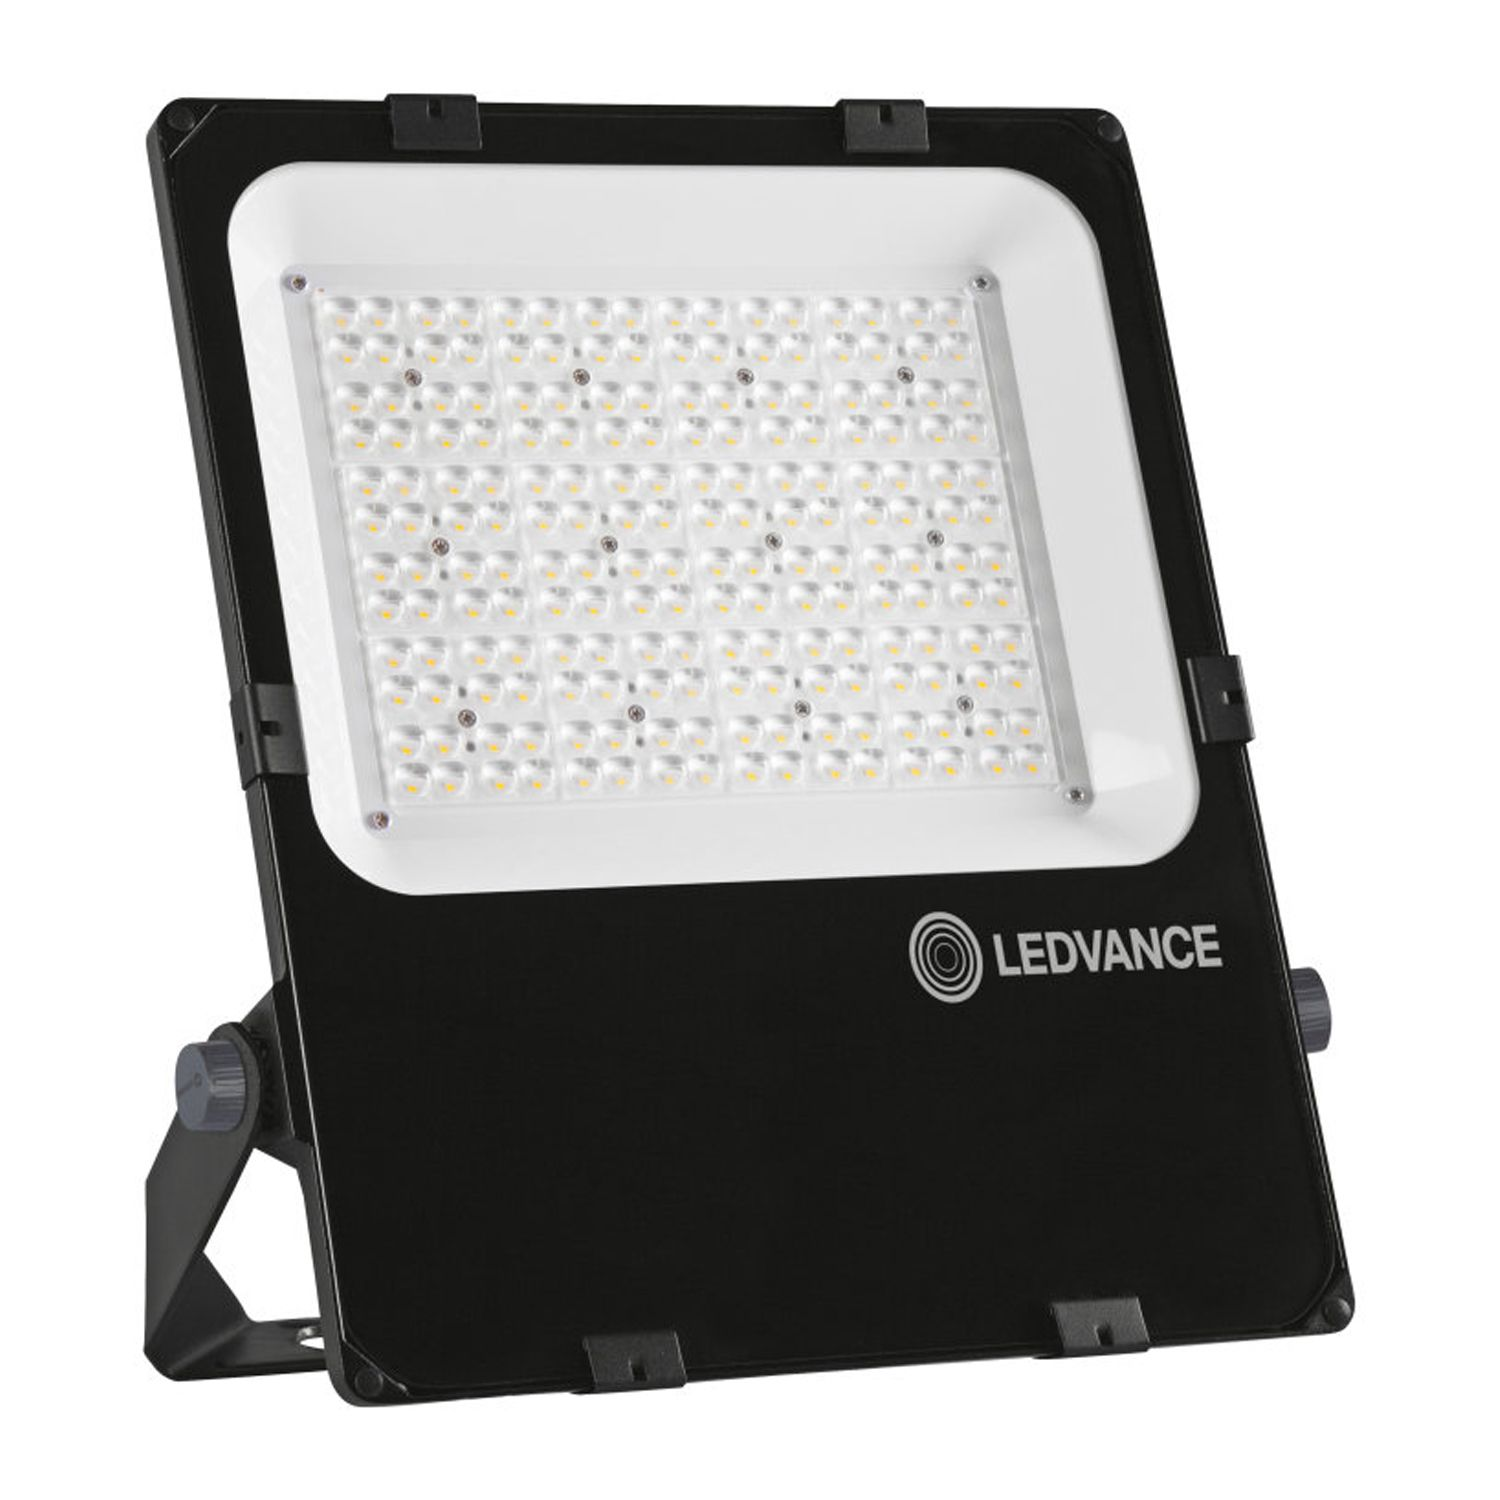 Ledvance LED Floodlight Performance 150W 3000K 19800lm IP66 | Warm White